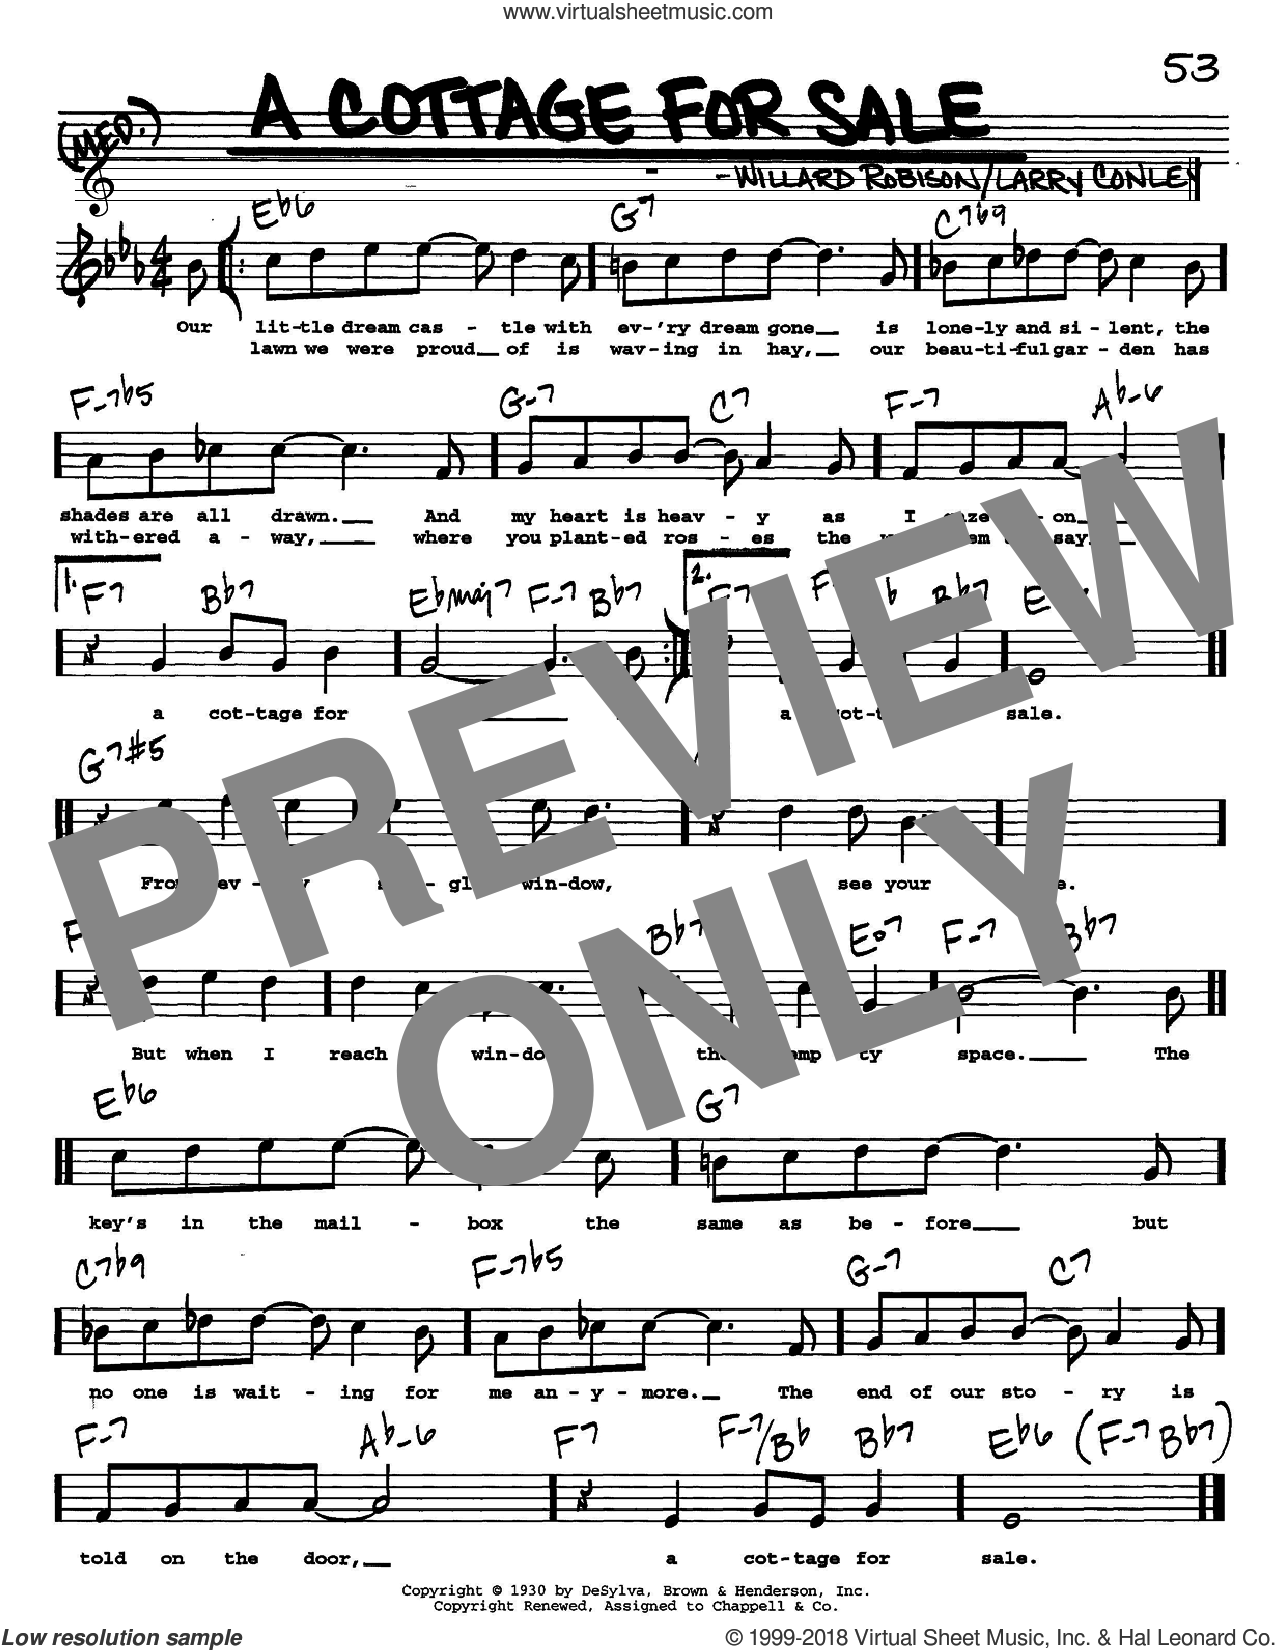 A Cottage For Sale sheet music for voice and other instruments (Vocal Volume 2) by Willard Robison and Larry Conley